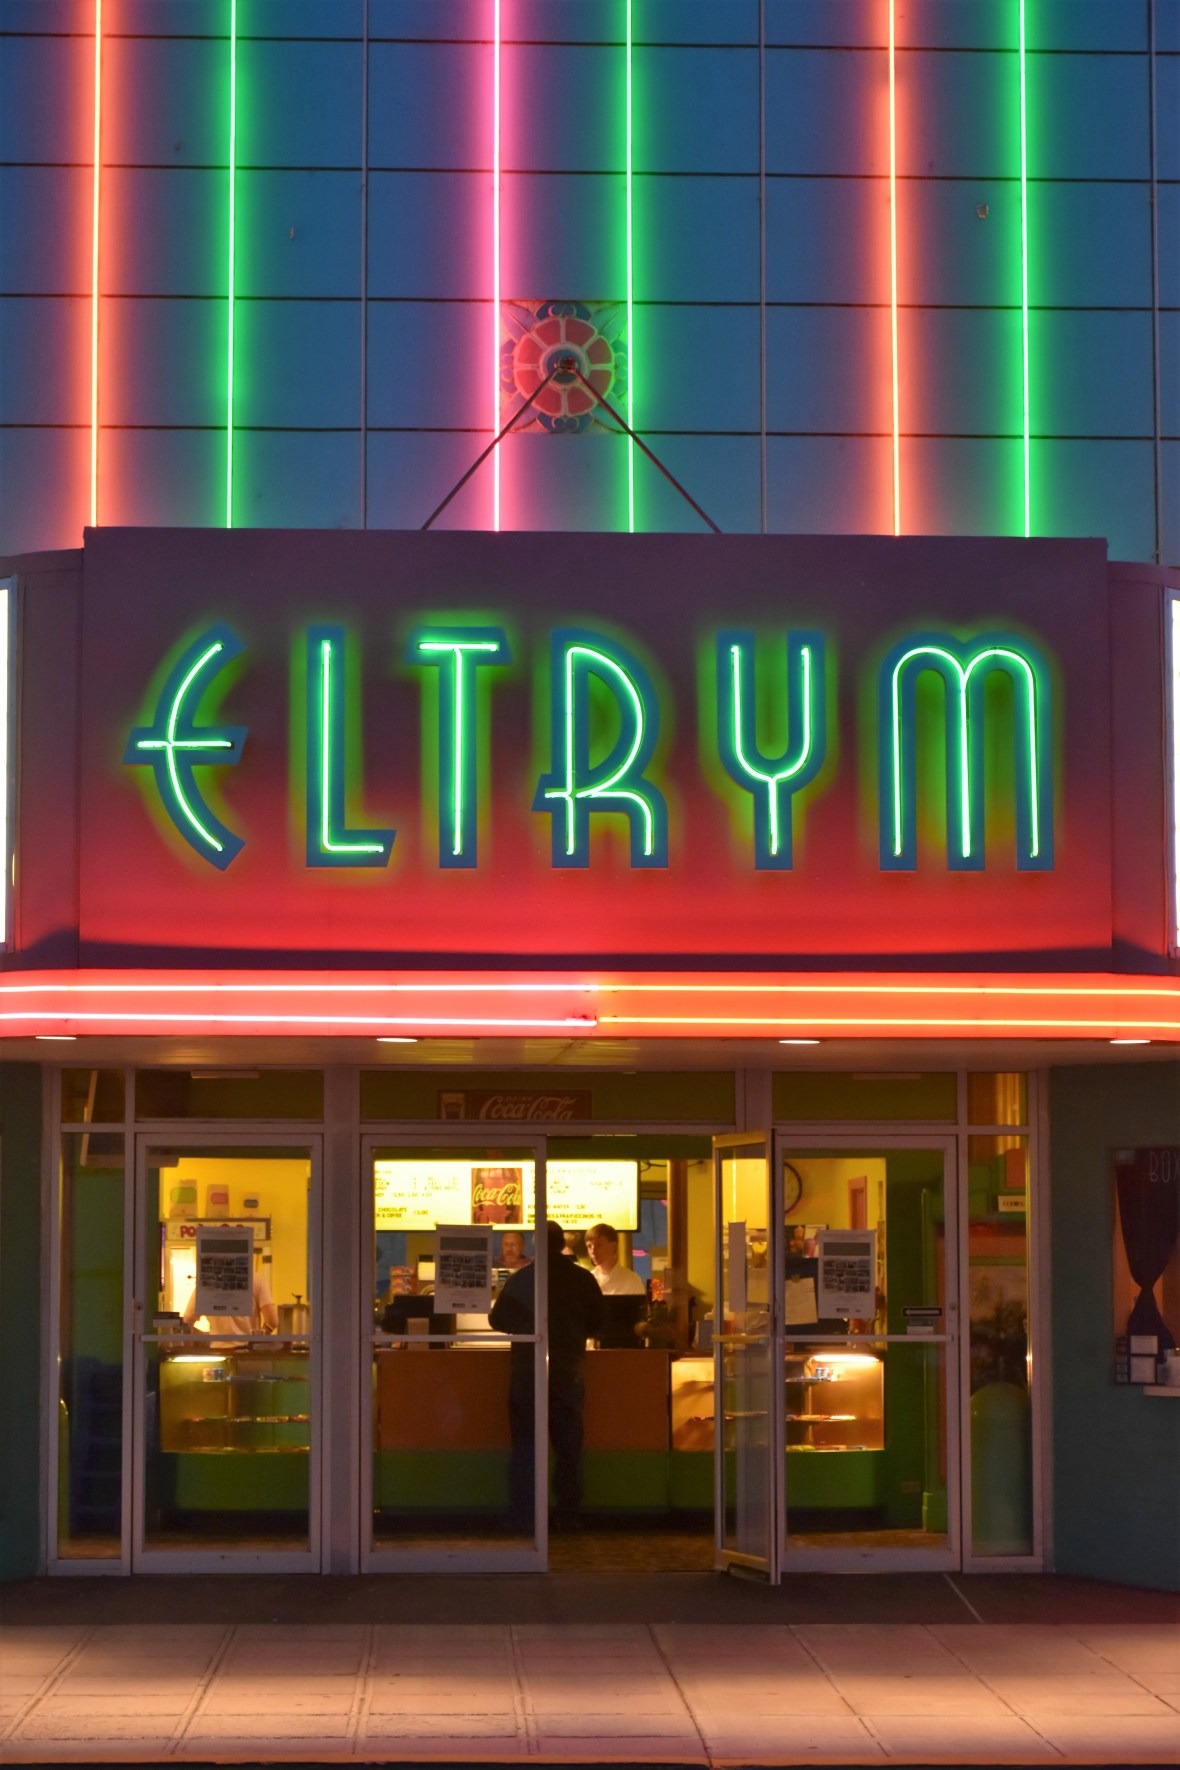 Eltrym Theater - 1809 1st Street, Baker City, Oregon U.S.A. - October 8, 2016